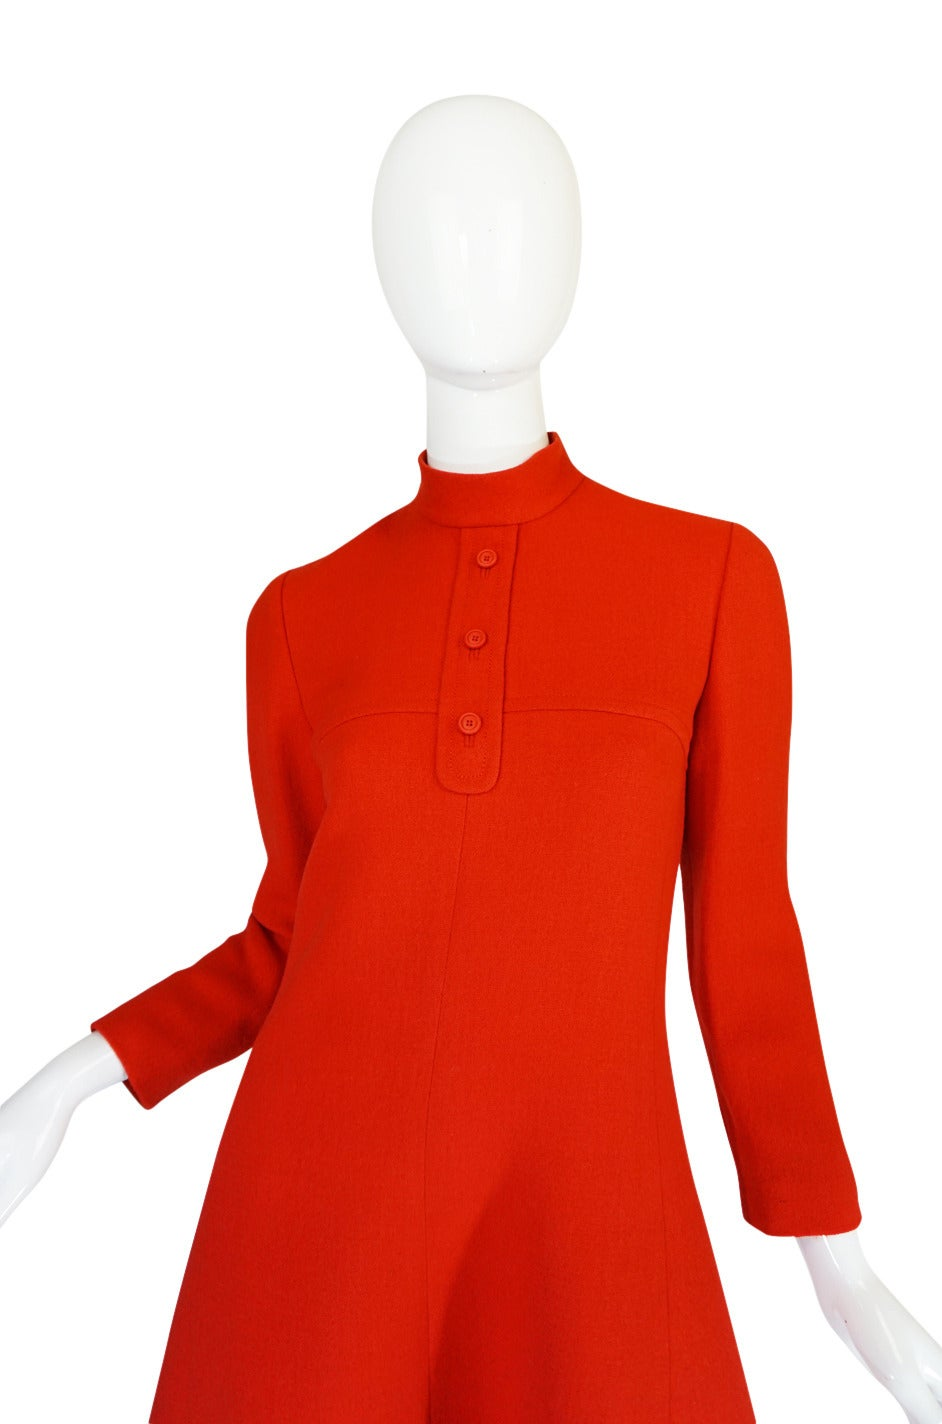 1960s Miss Dior Chic Bright Red Mod Dress For Sale 3